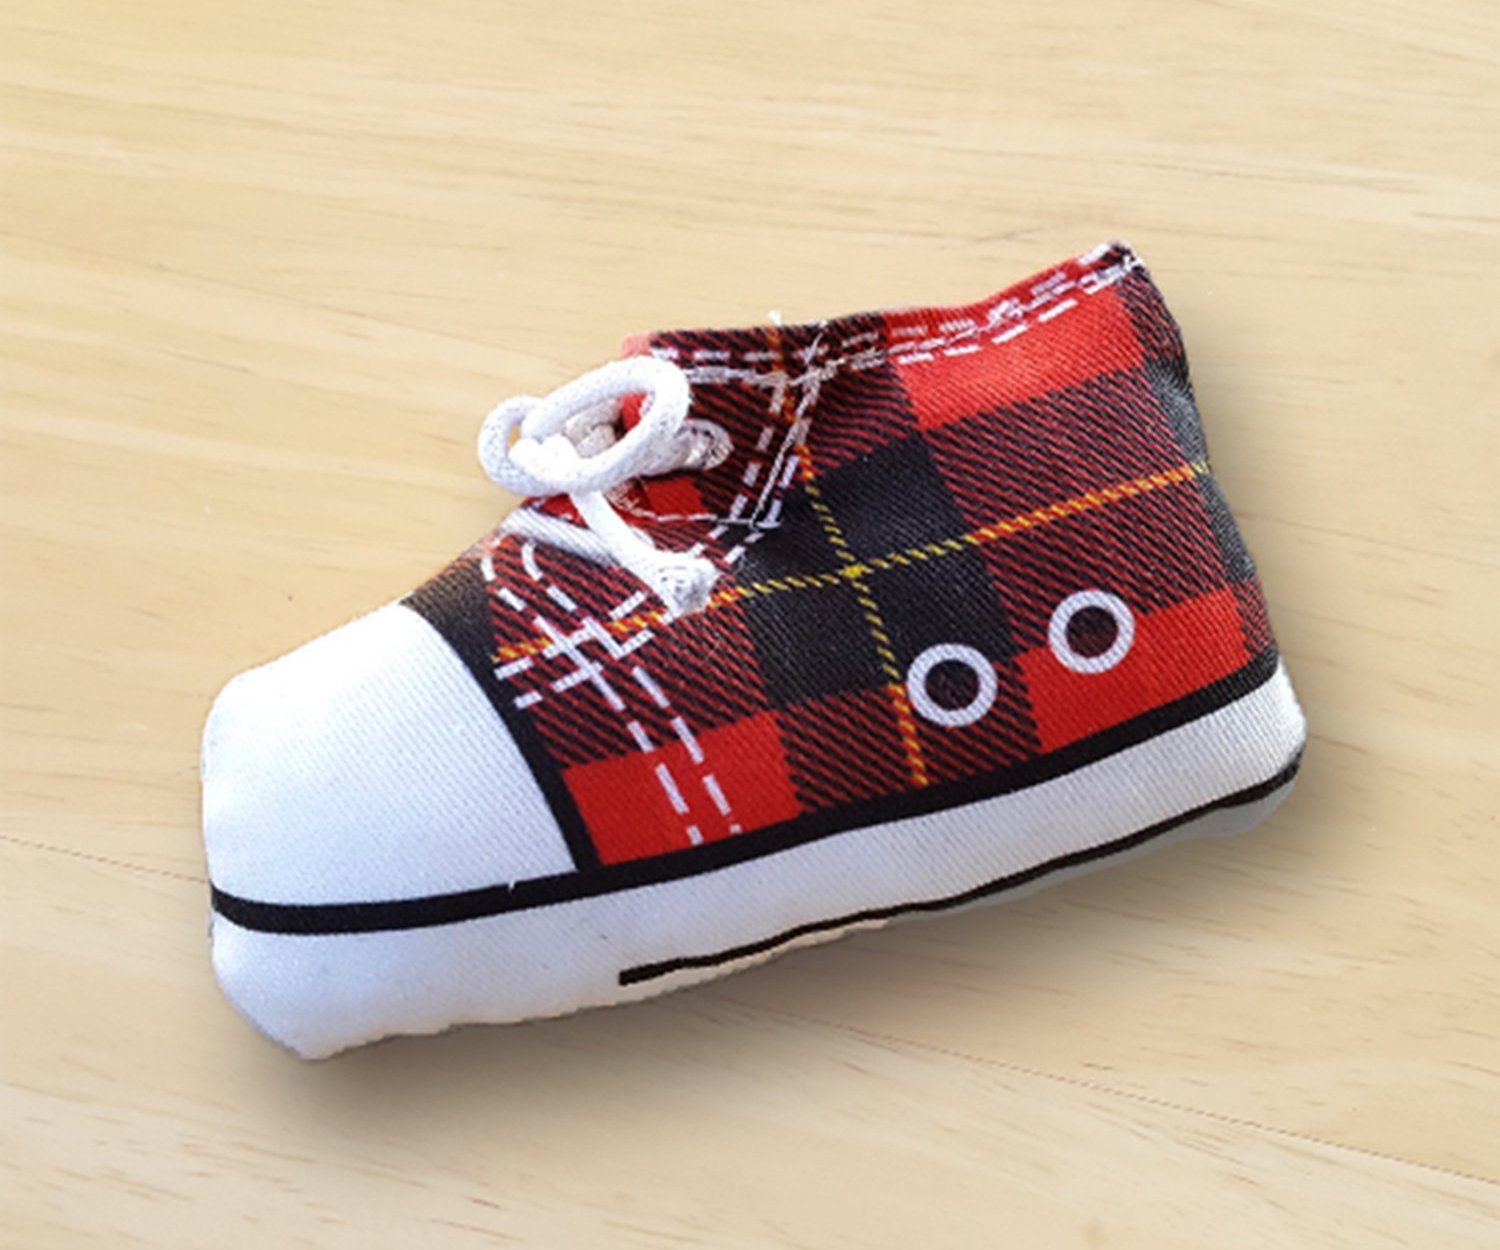 Sneaker Cat Toy in Black and Red Tartan